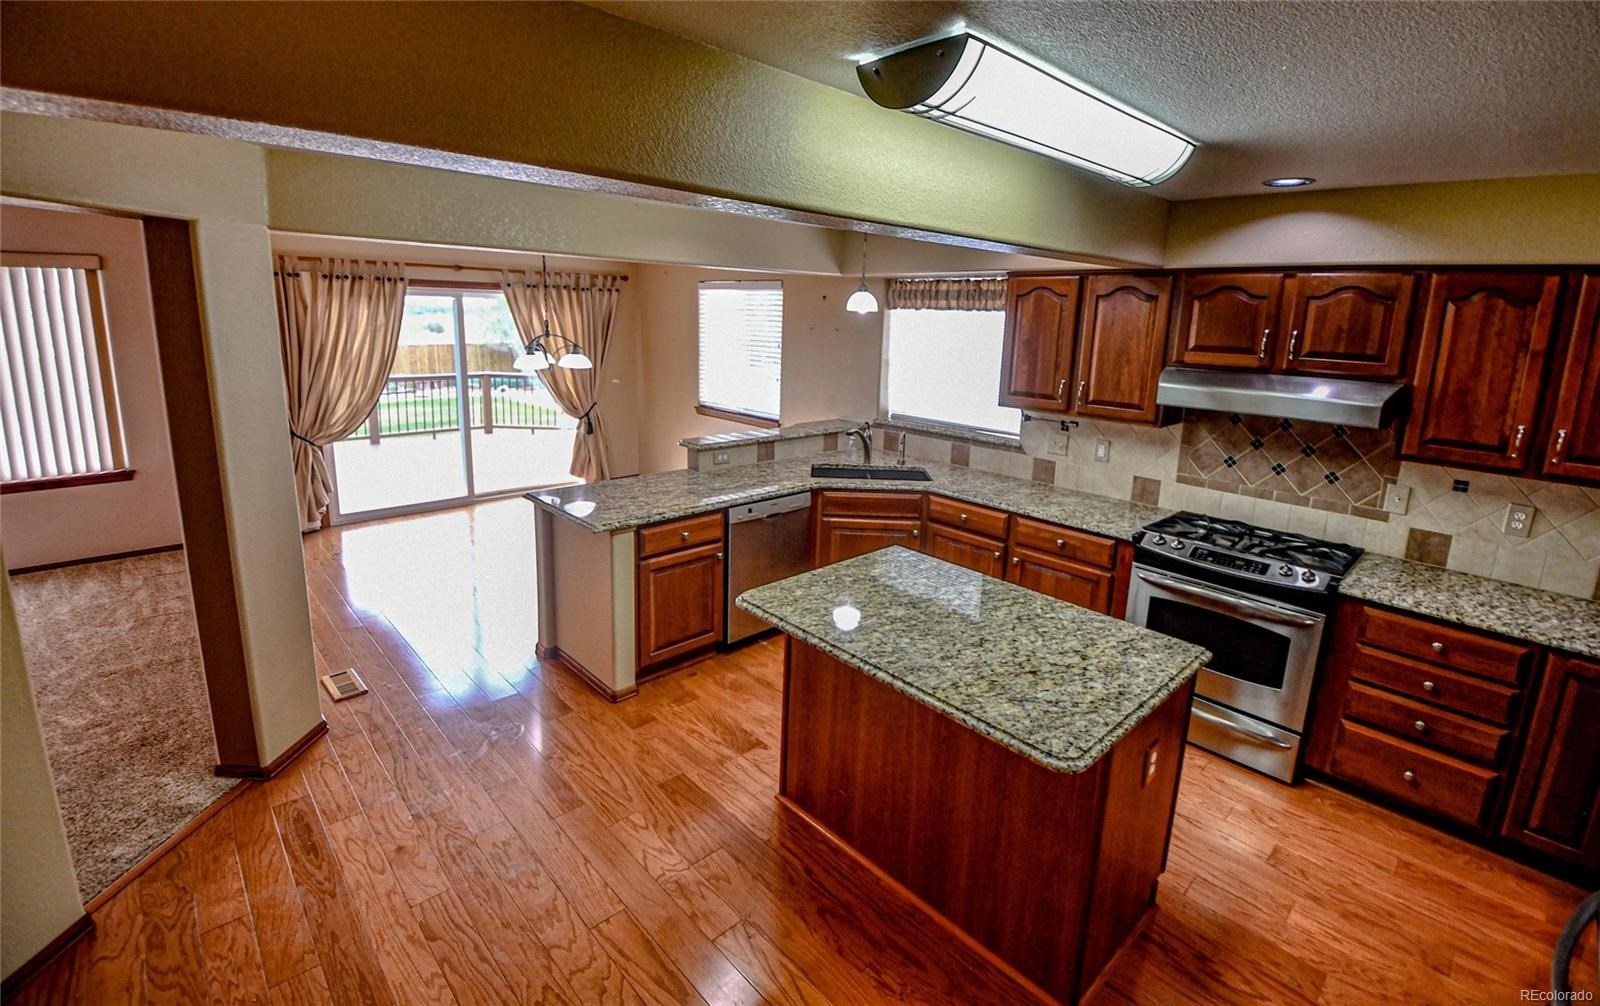 MLS# 8037968 - 3 - 6565 W 99th Avenue, Westminster, CO 80021